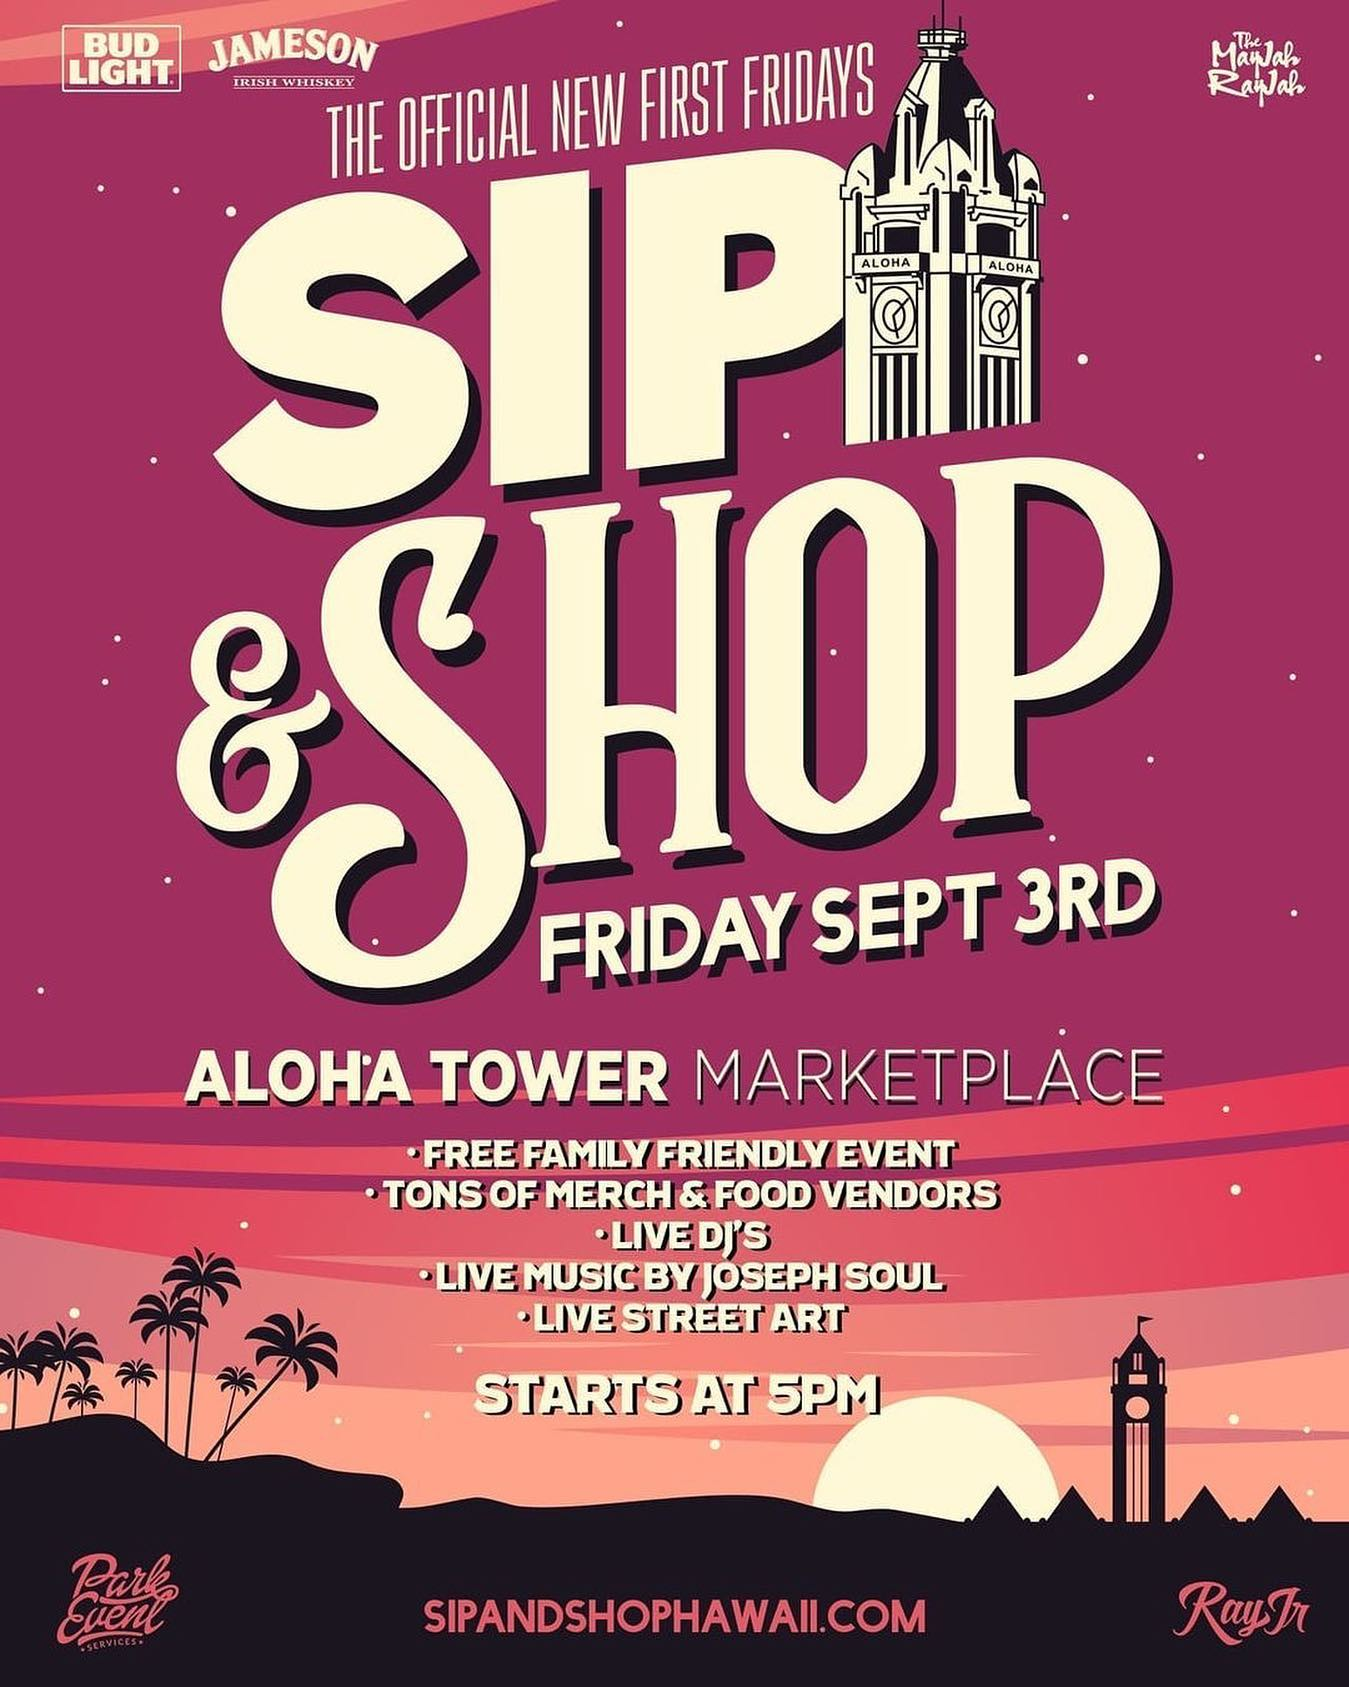 Posted @withregram • @jaypark808 And....we...are....back! SAVE THE DATE! The New Official First FridaysSIP & SHOP @ Aloha Tower Marketplace Friday September 3 starting at 5pm. FREE Family Friendly Event. Enjoy great food , drinks, and shopping. Folowing all cdc, state, and city Covid-19 guidelines. Lets open up safely! Stay tuned for more info! Lets....GO! #mayjahrayjah #tmrevents #rayjr #parkeventservices - from Instagram